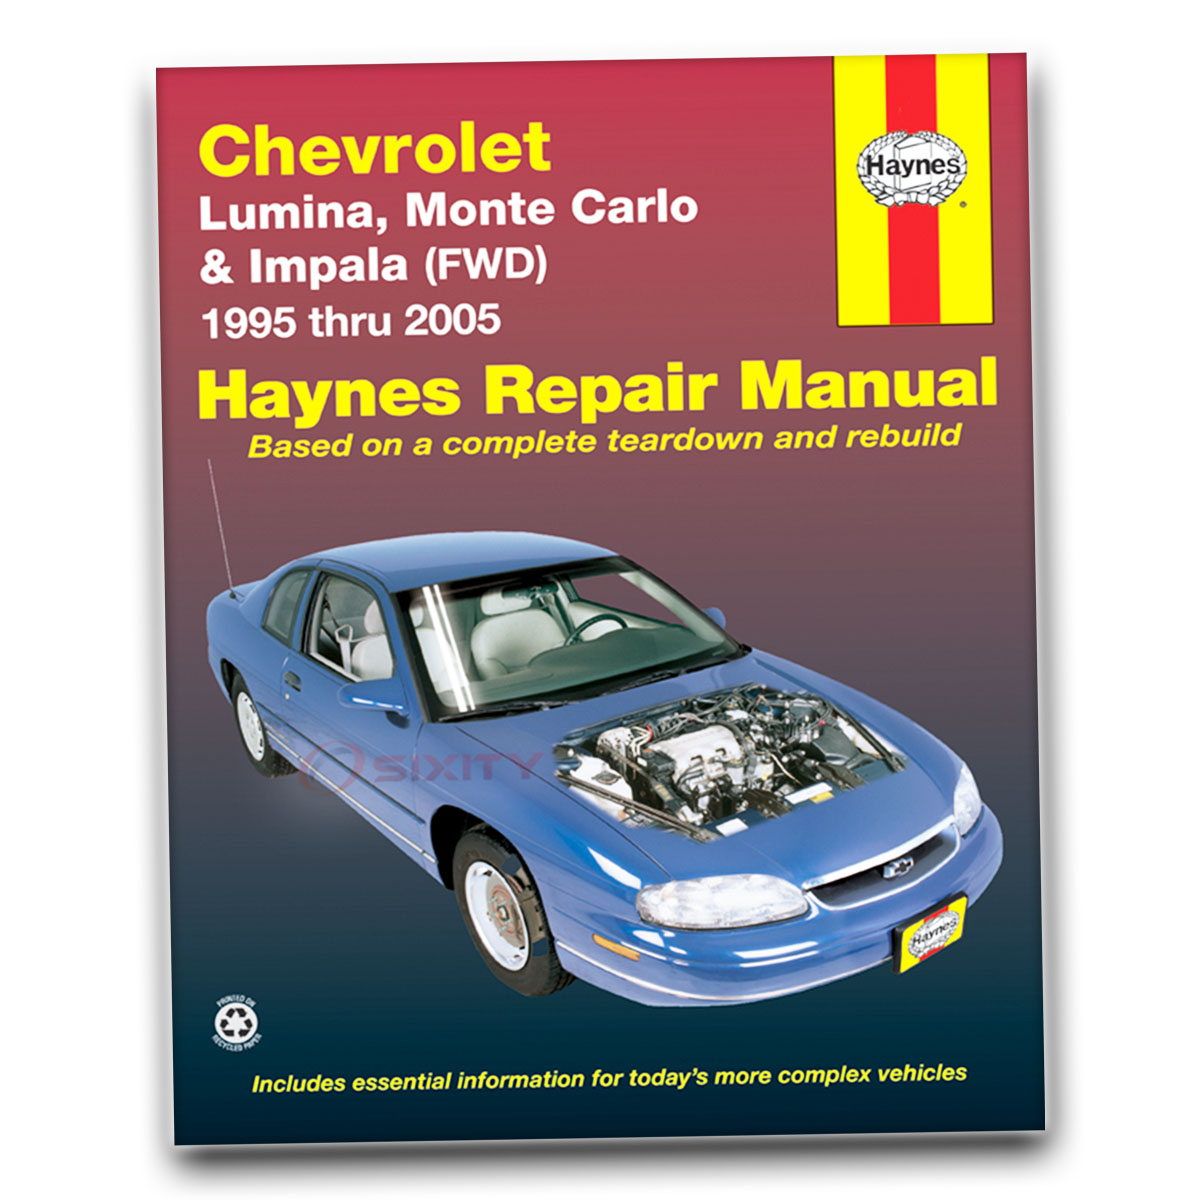 Haynes Repair Manual for Chevy Lumina LS Base LTZ Shop Service Garage Book  bl